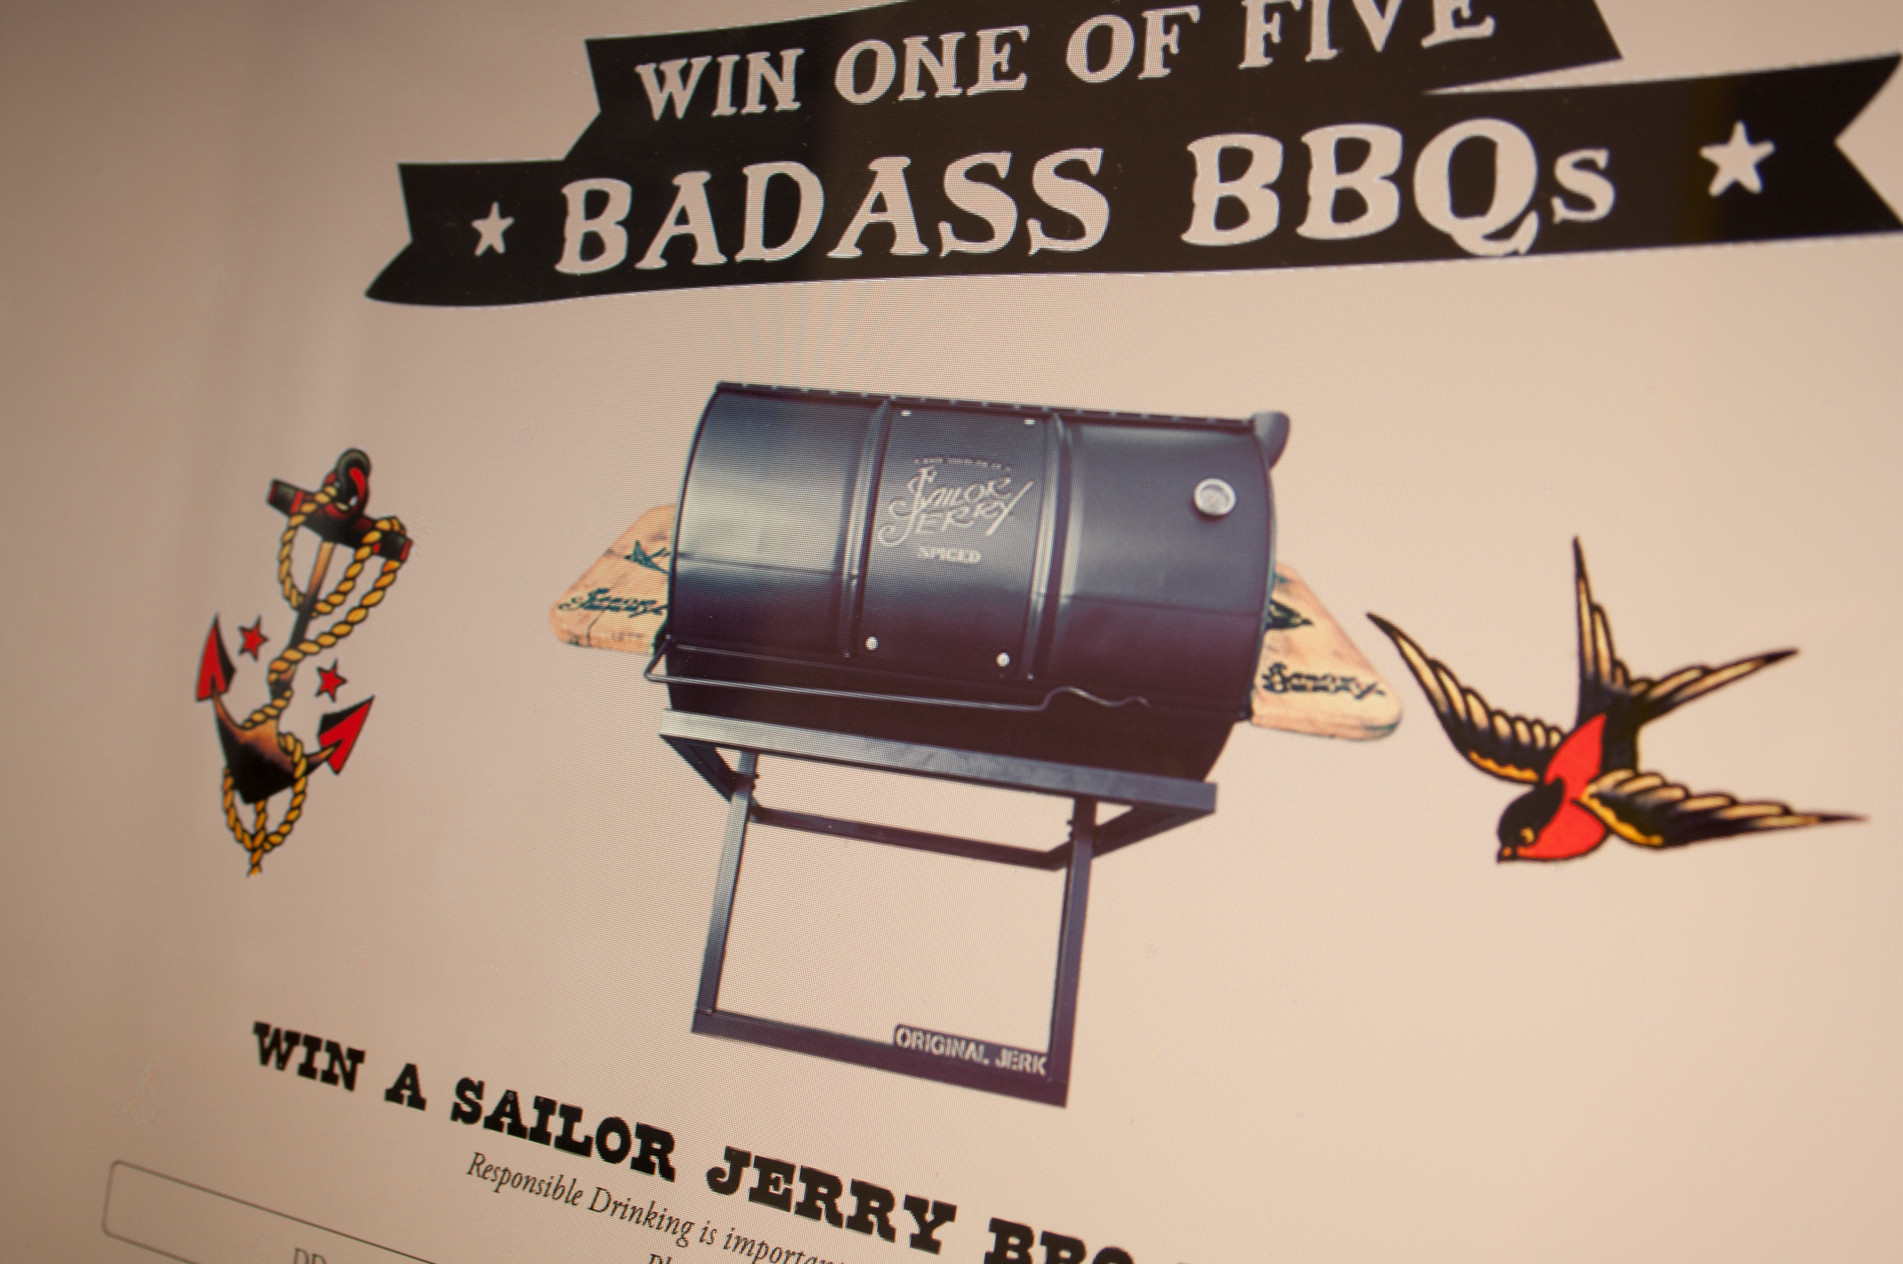 Sailor Jerry BBQ Micorsite